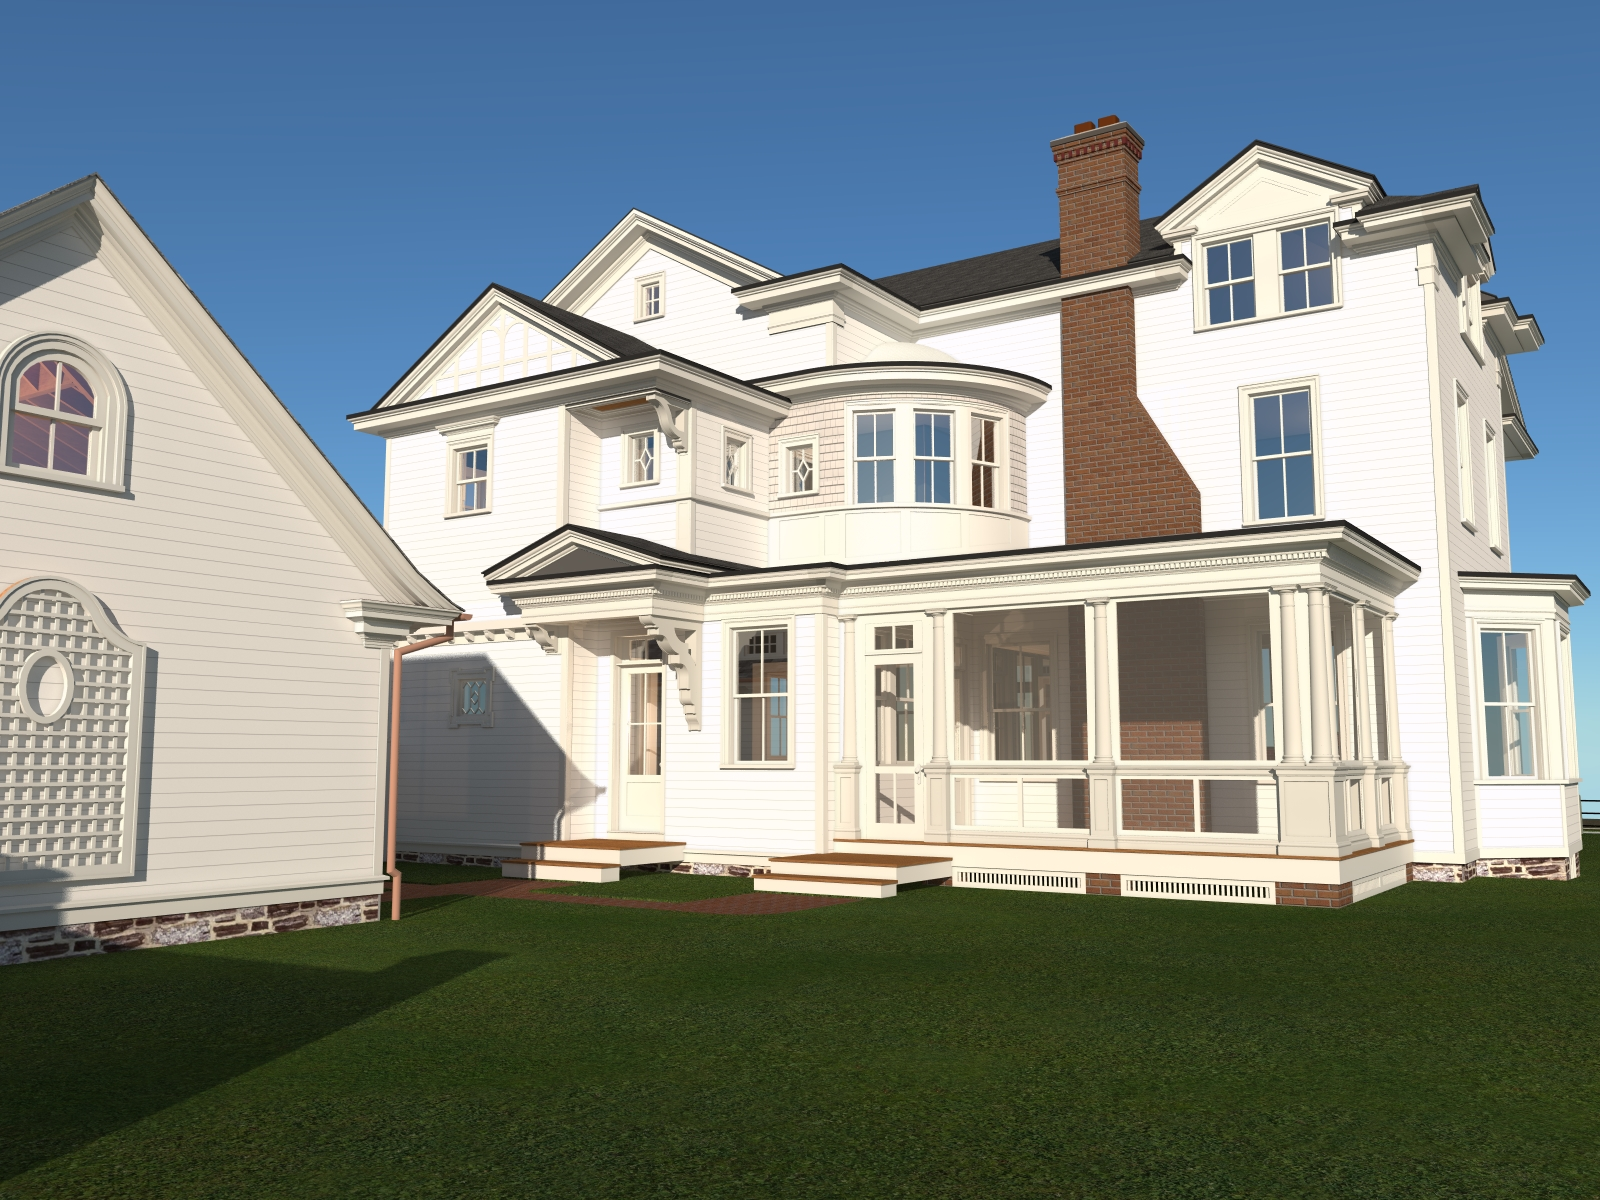 Historic Home Renovation in ARCHICAD   BIM Engine by ARCHICAD